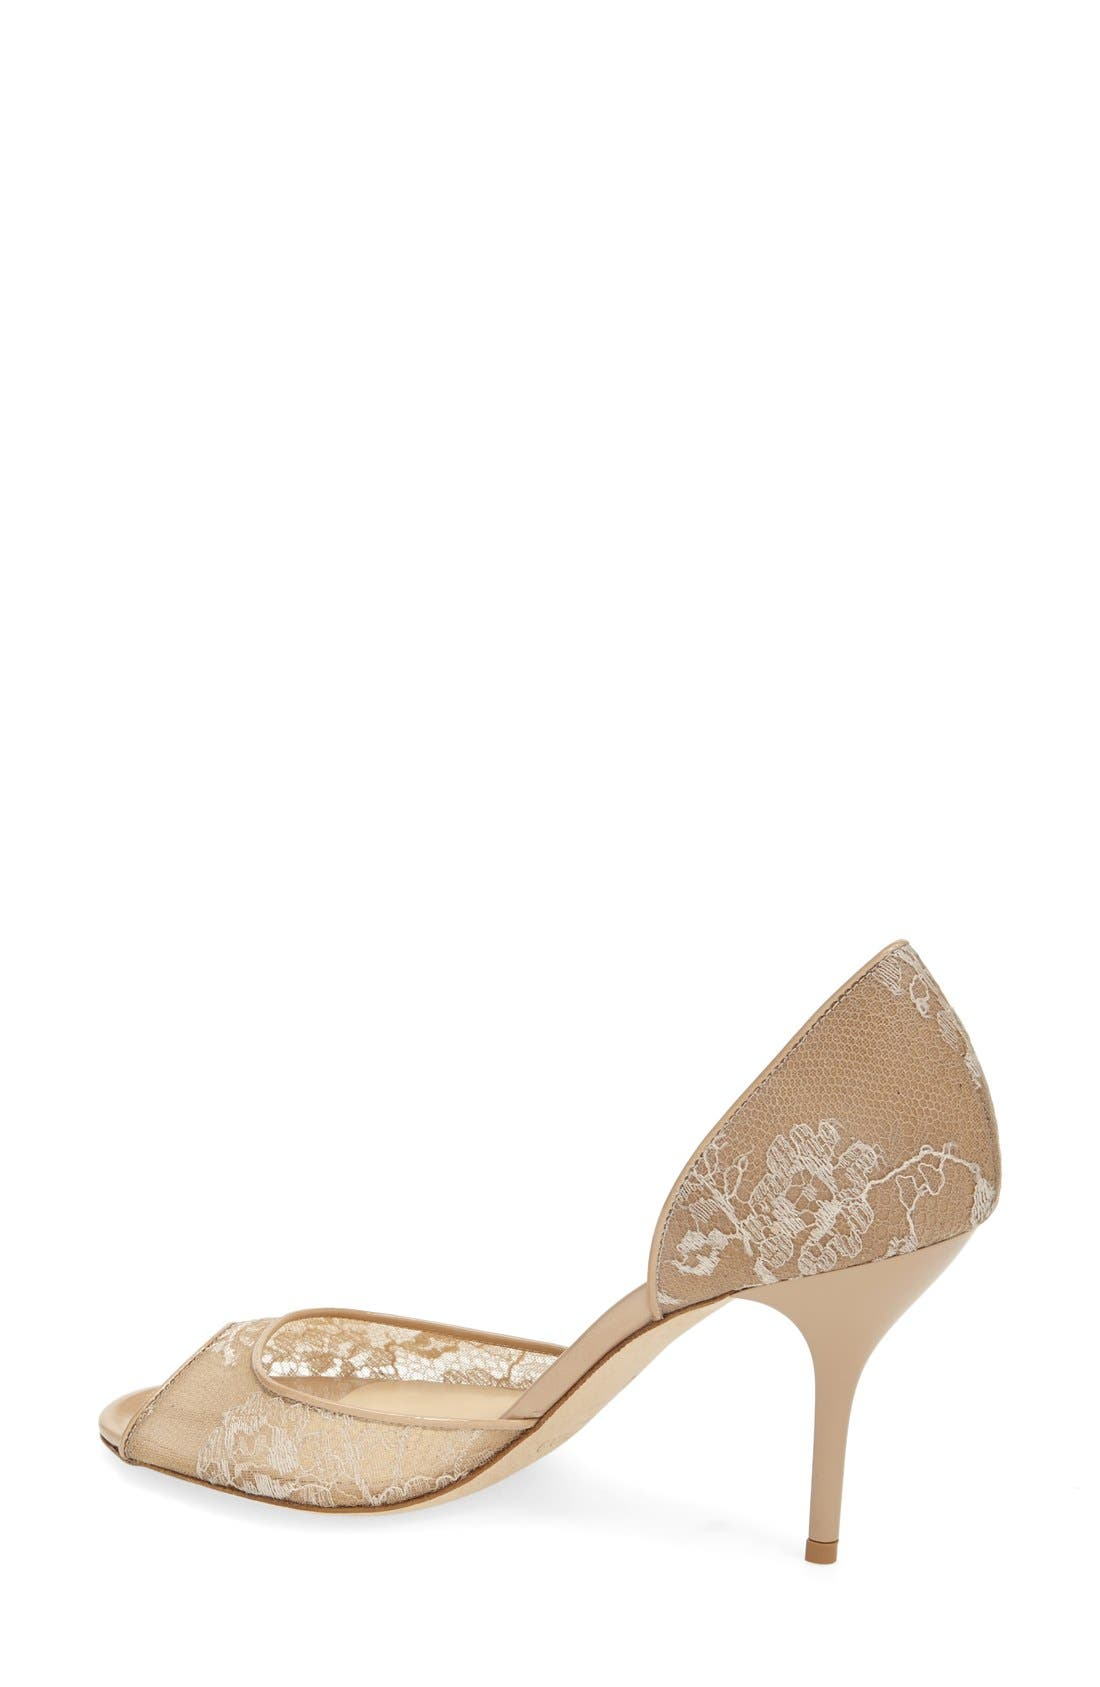 Alternate Image 2  - Jimmy Choo 'Lien' Lace Open Toe d'Orsay Pump (Women)